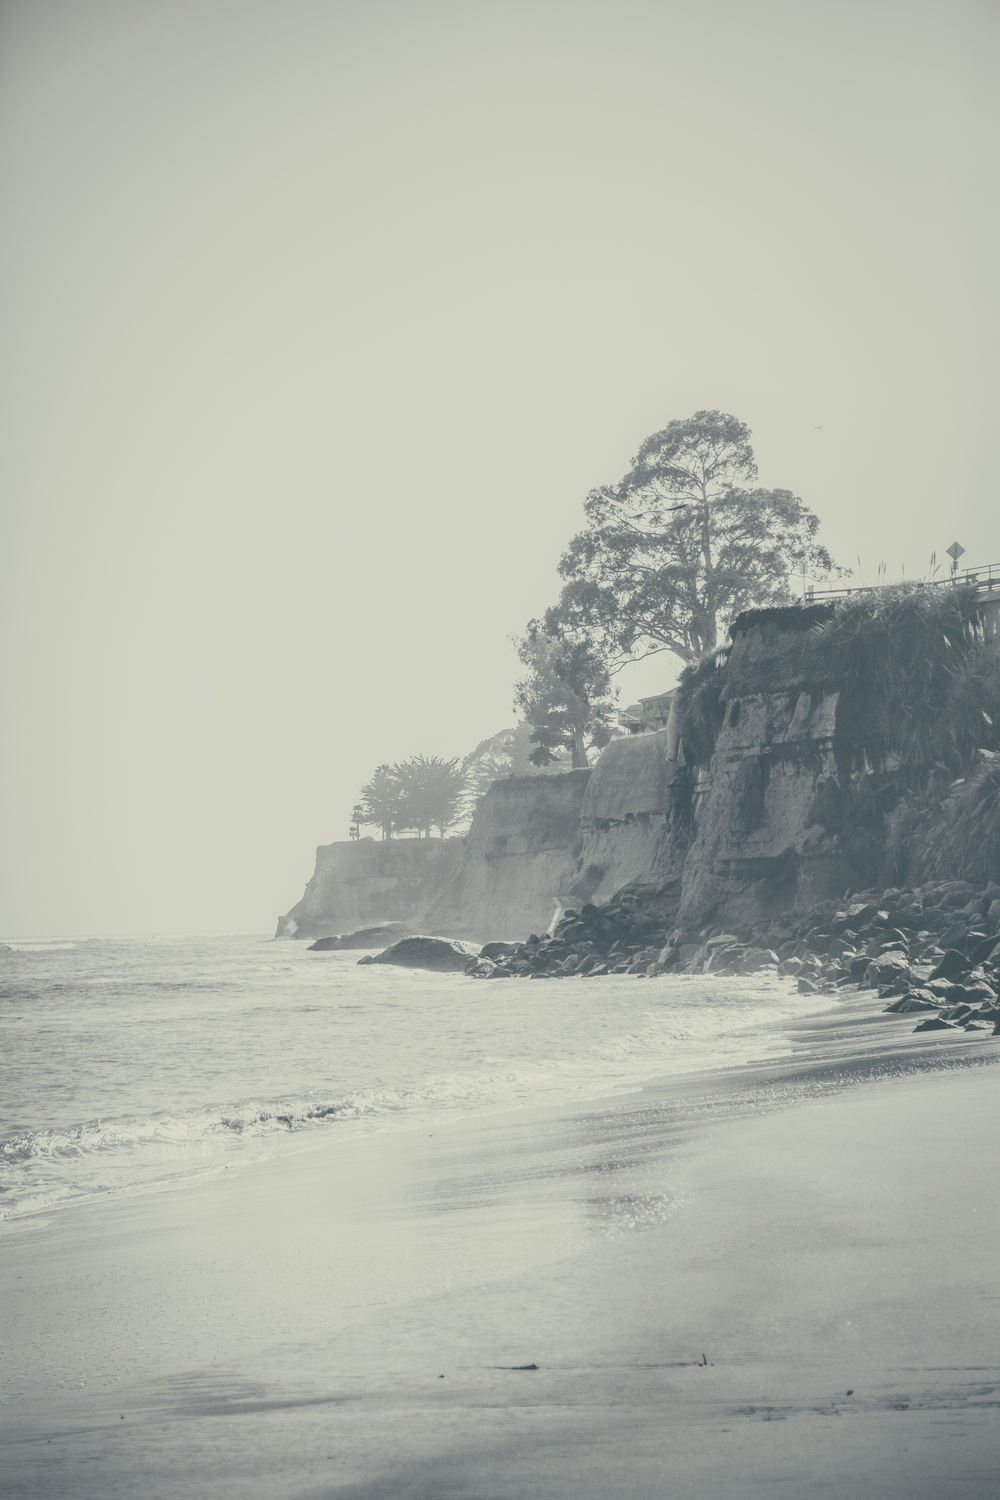 Santa Cruz - Cliffs leading to Pleasure Point in Capitola